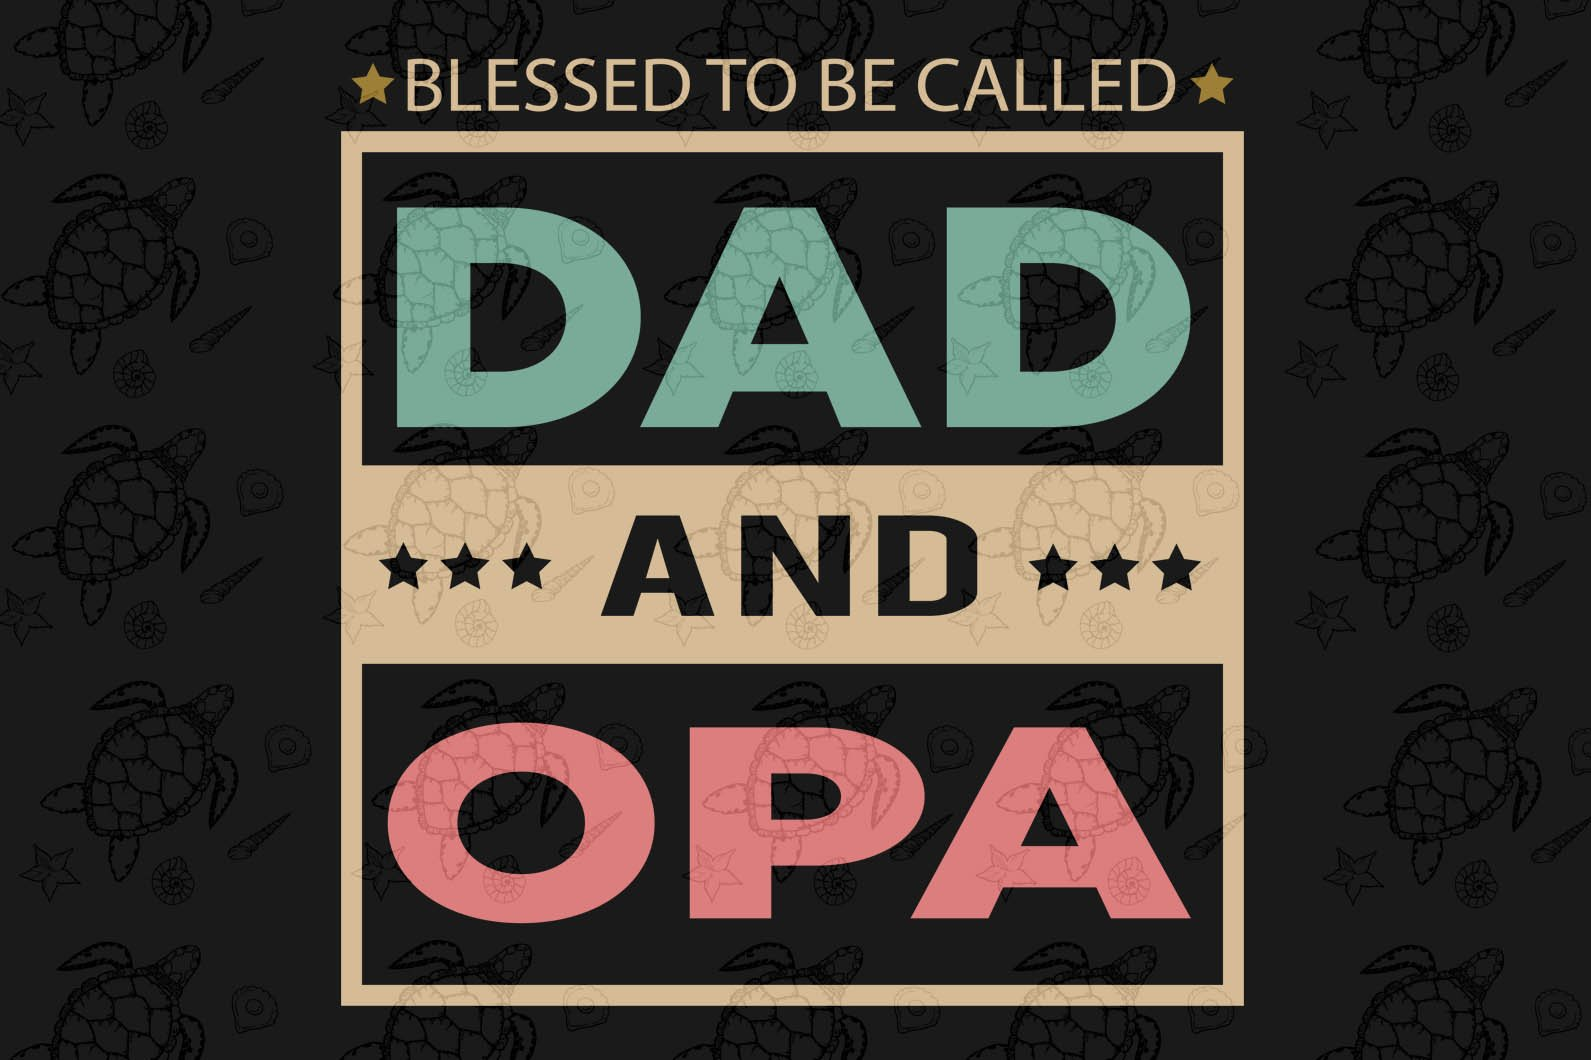 Blessed to be called dad and opa , papa svg, baba svg,father's day svg, father svg, dad svg, daddy svg, poppop svg Files For Silhouette, Files For Cricut, SVG, DXF, EPS, PNG, Instant Download